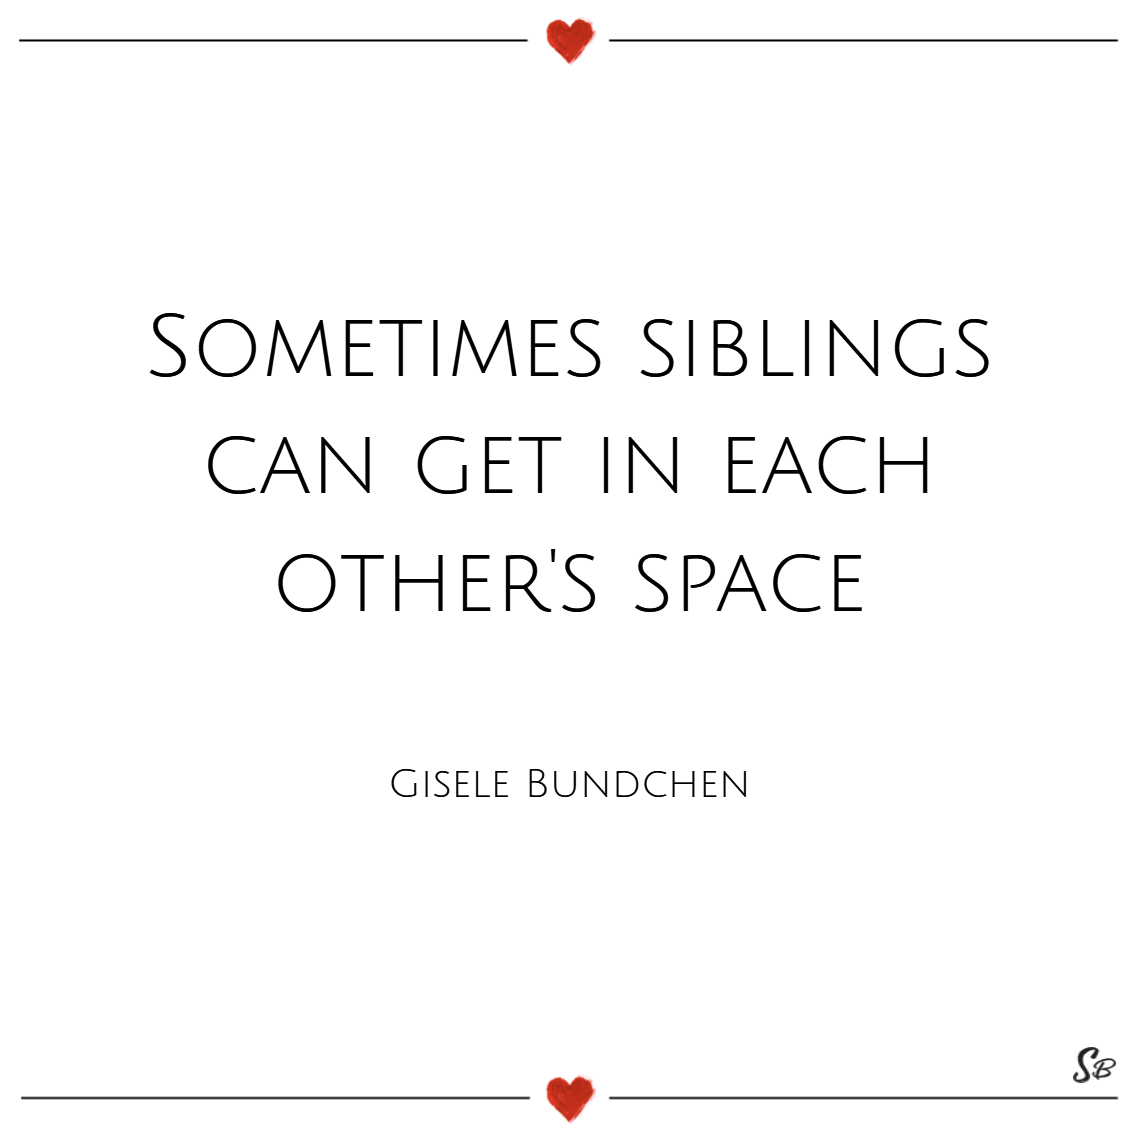 Sometimes siblings can get in each other's space. – gisele bundchen